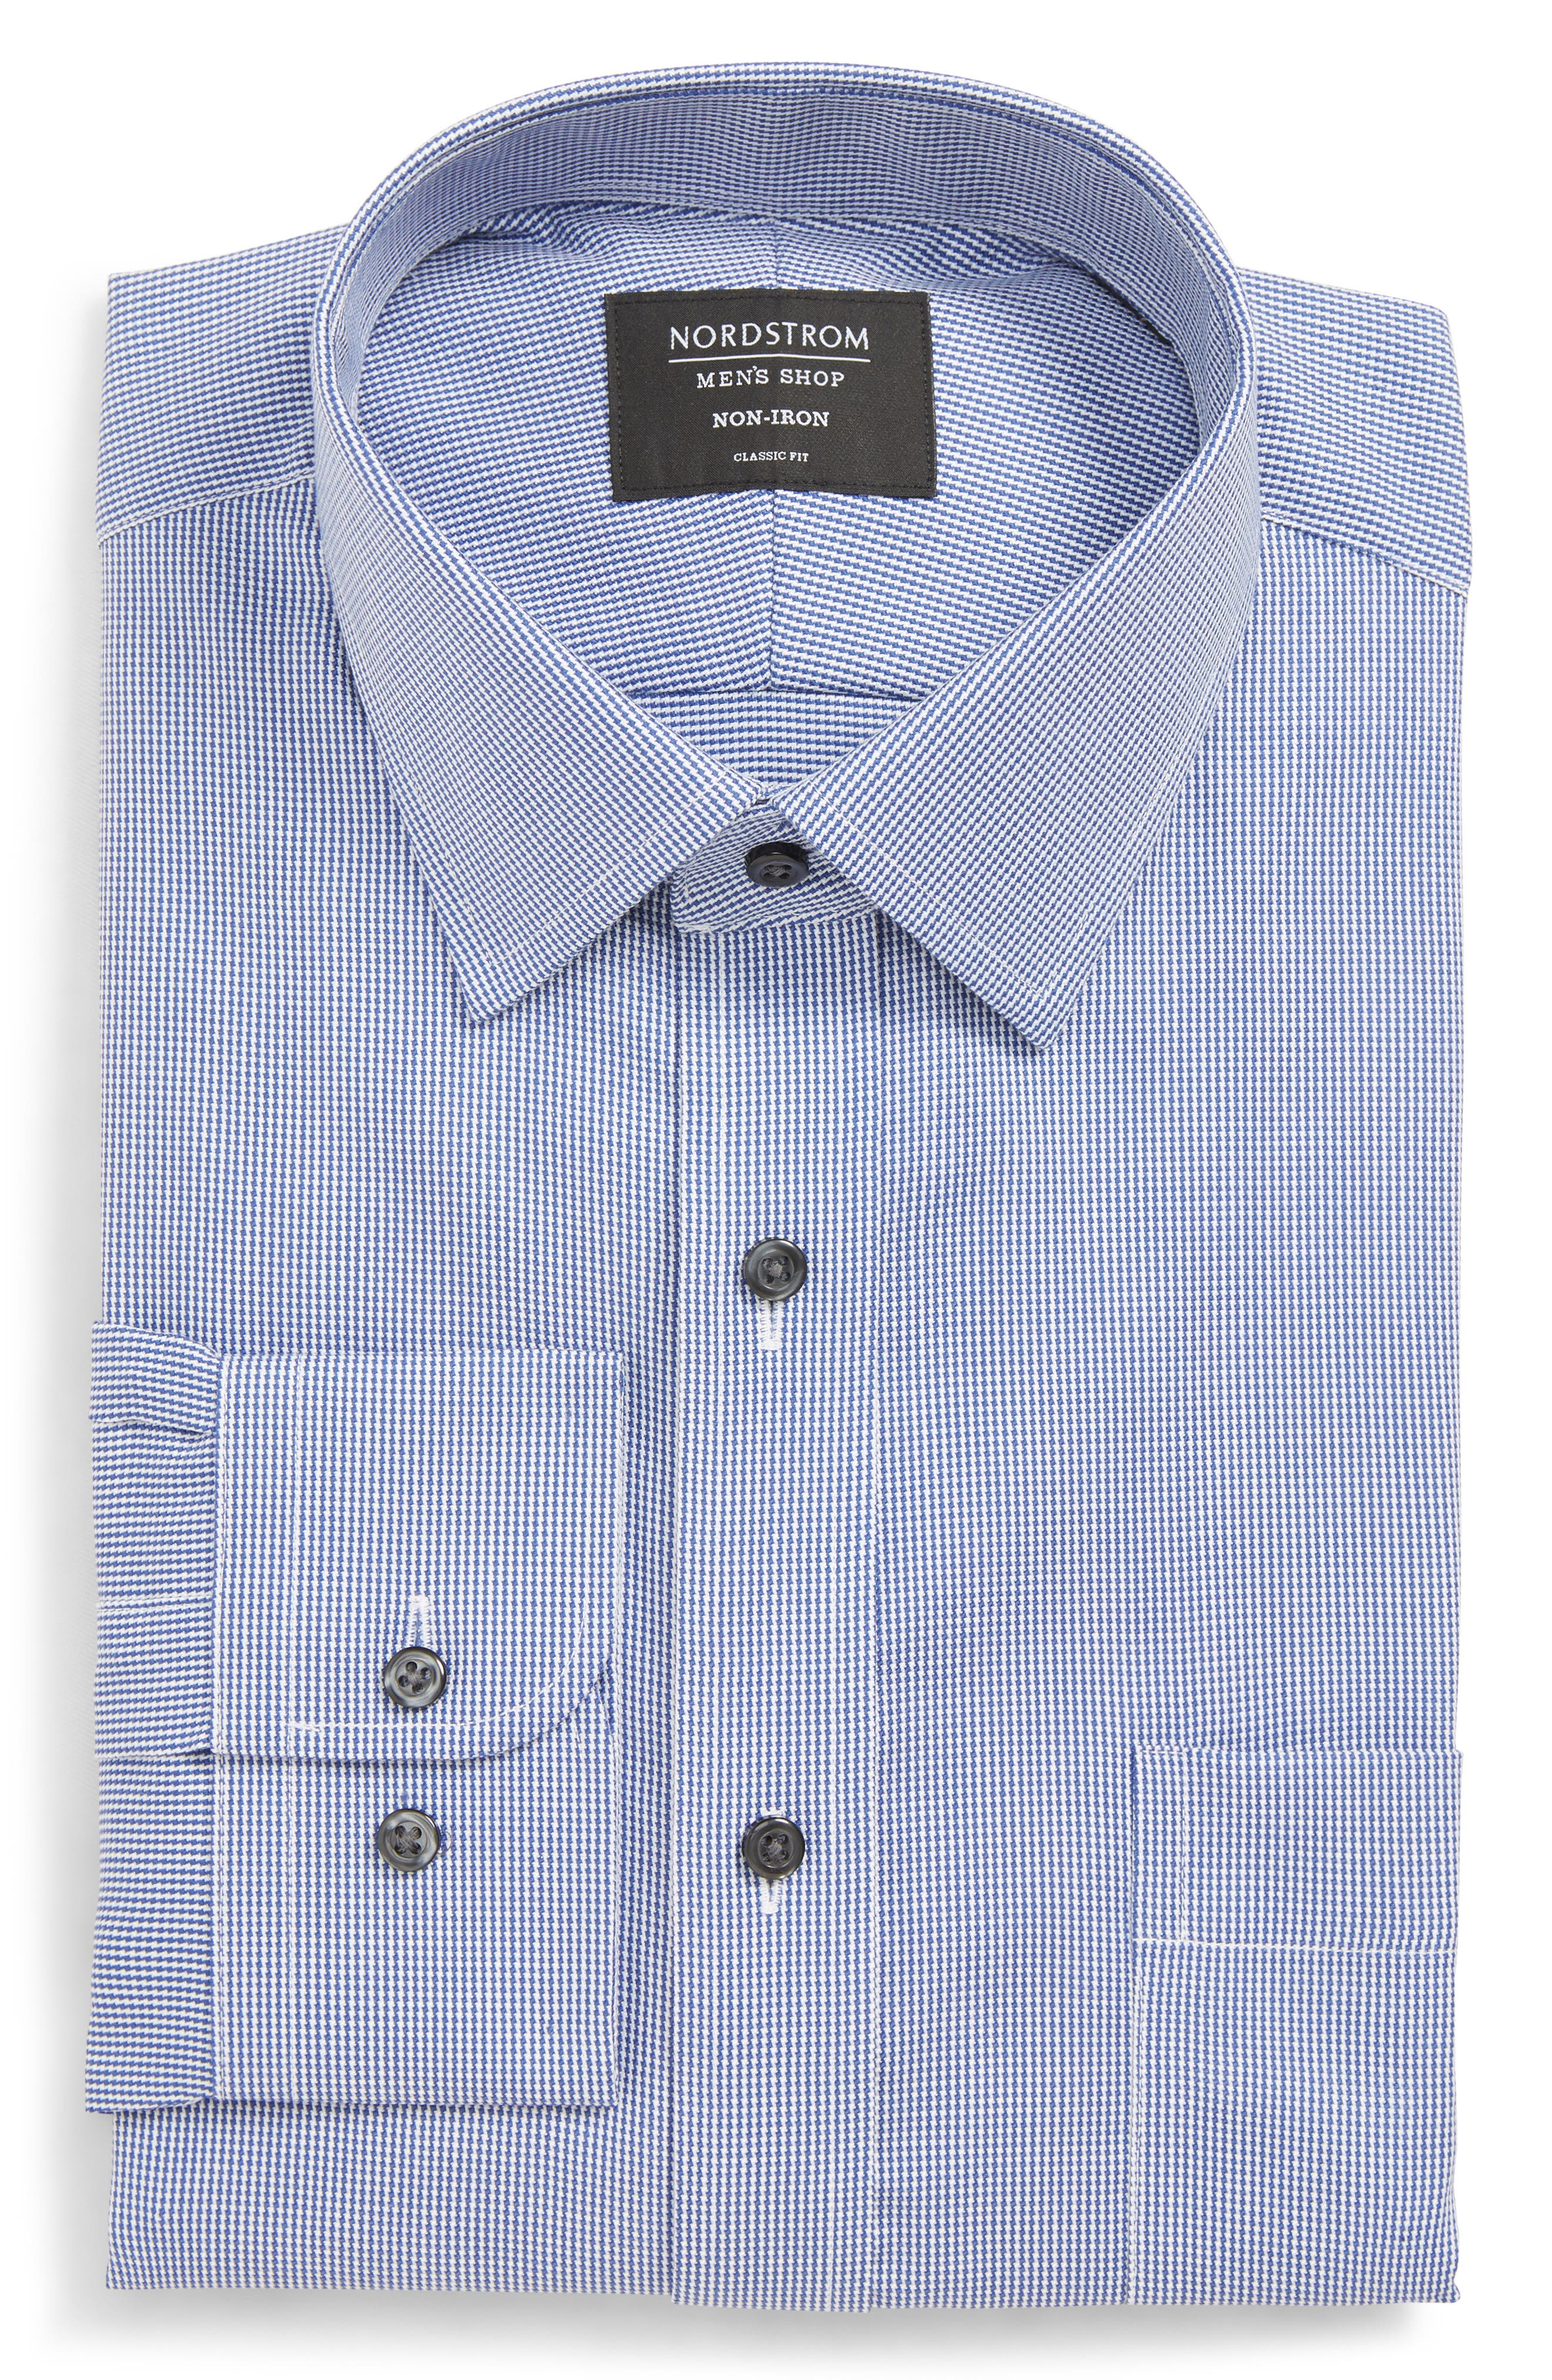 NORDSTROM MEN'S SHOP, Traditional Fit Non-Iron Solid Dress Shirt, Alternate thumbnail 5, color, NAVY DRESS